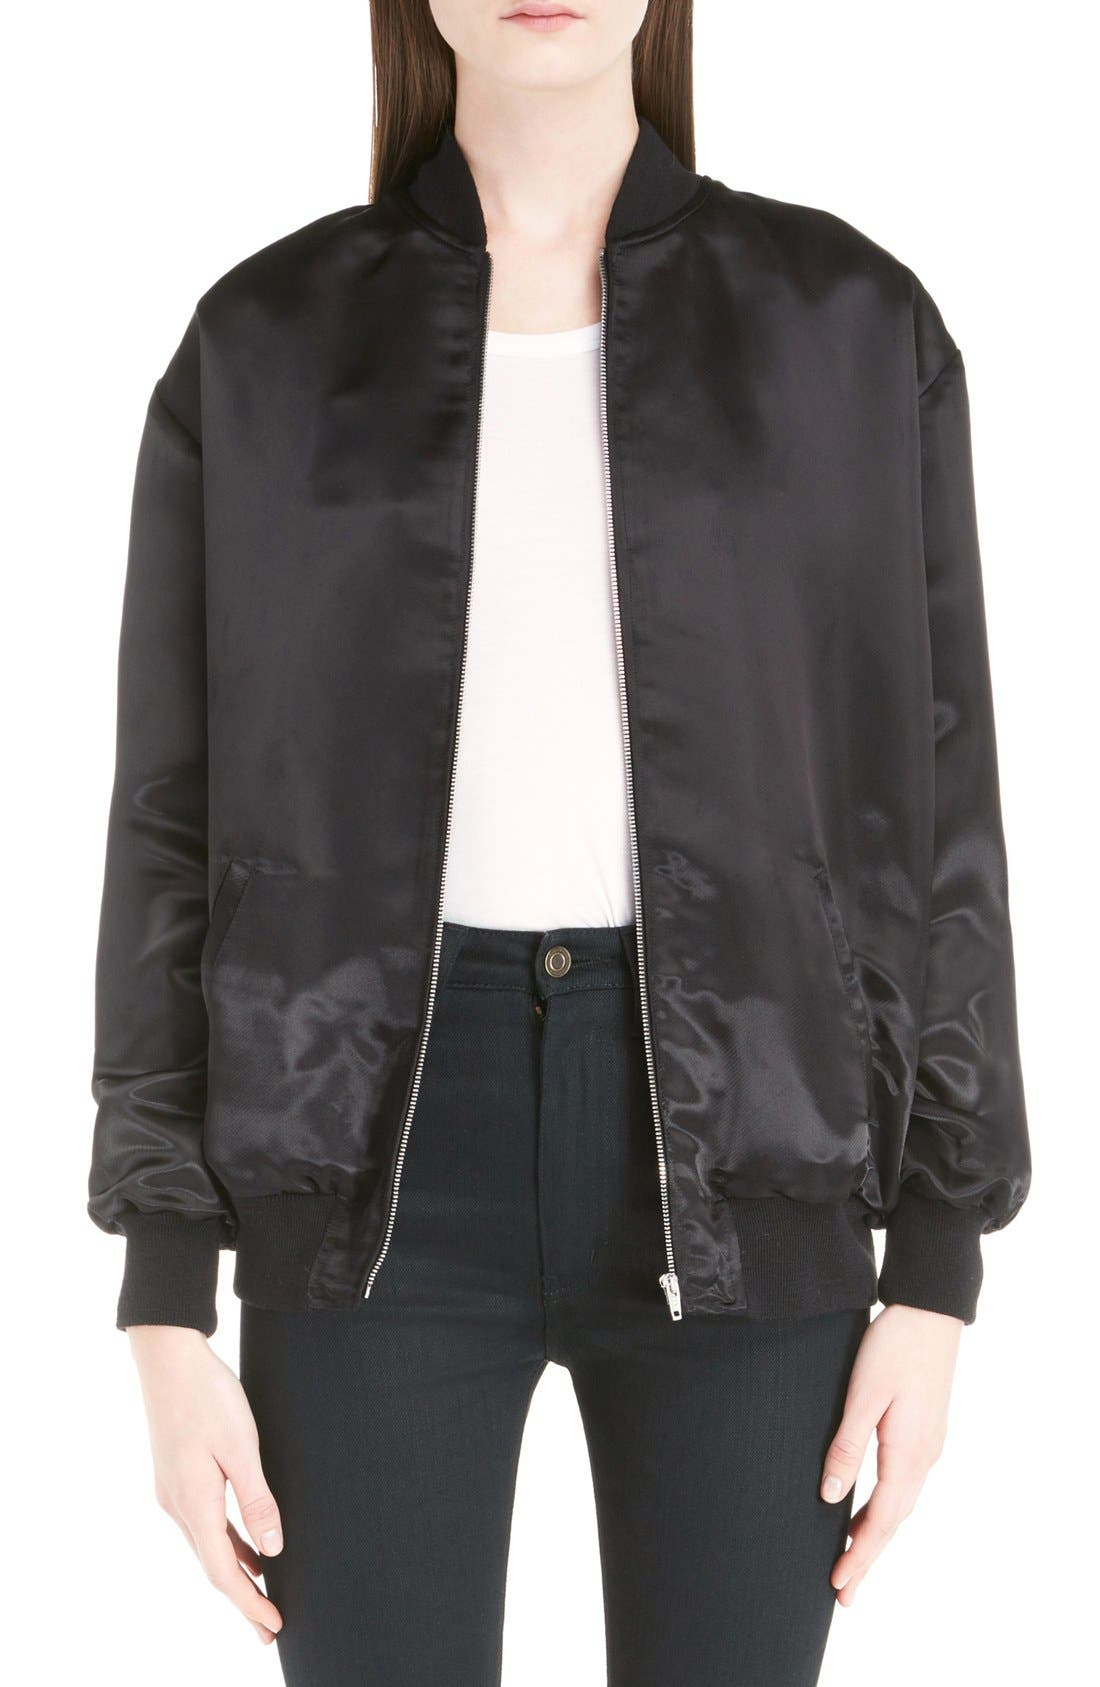 Saint Laurent 'Teddy' Oversize Patch Satin Bomber Jacket